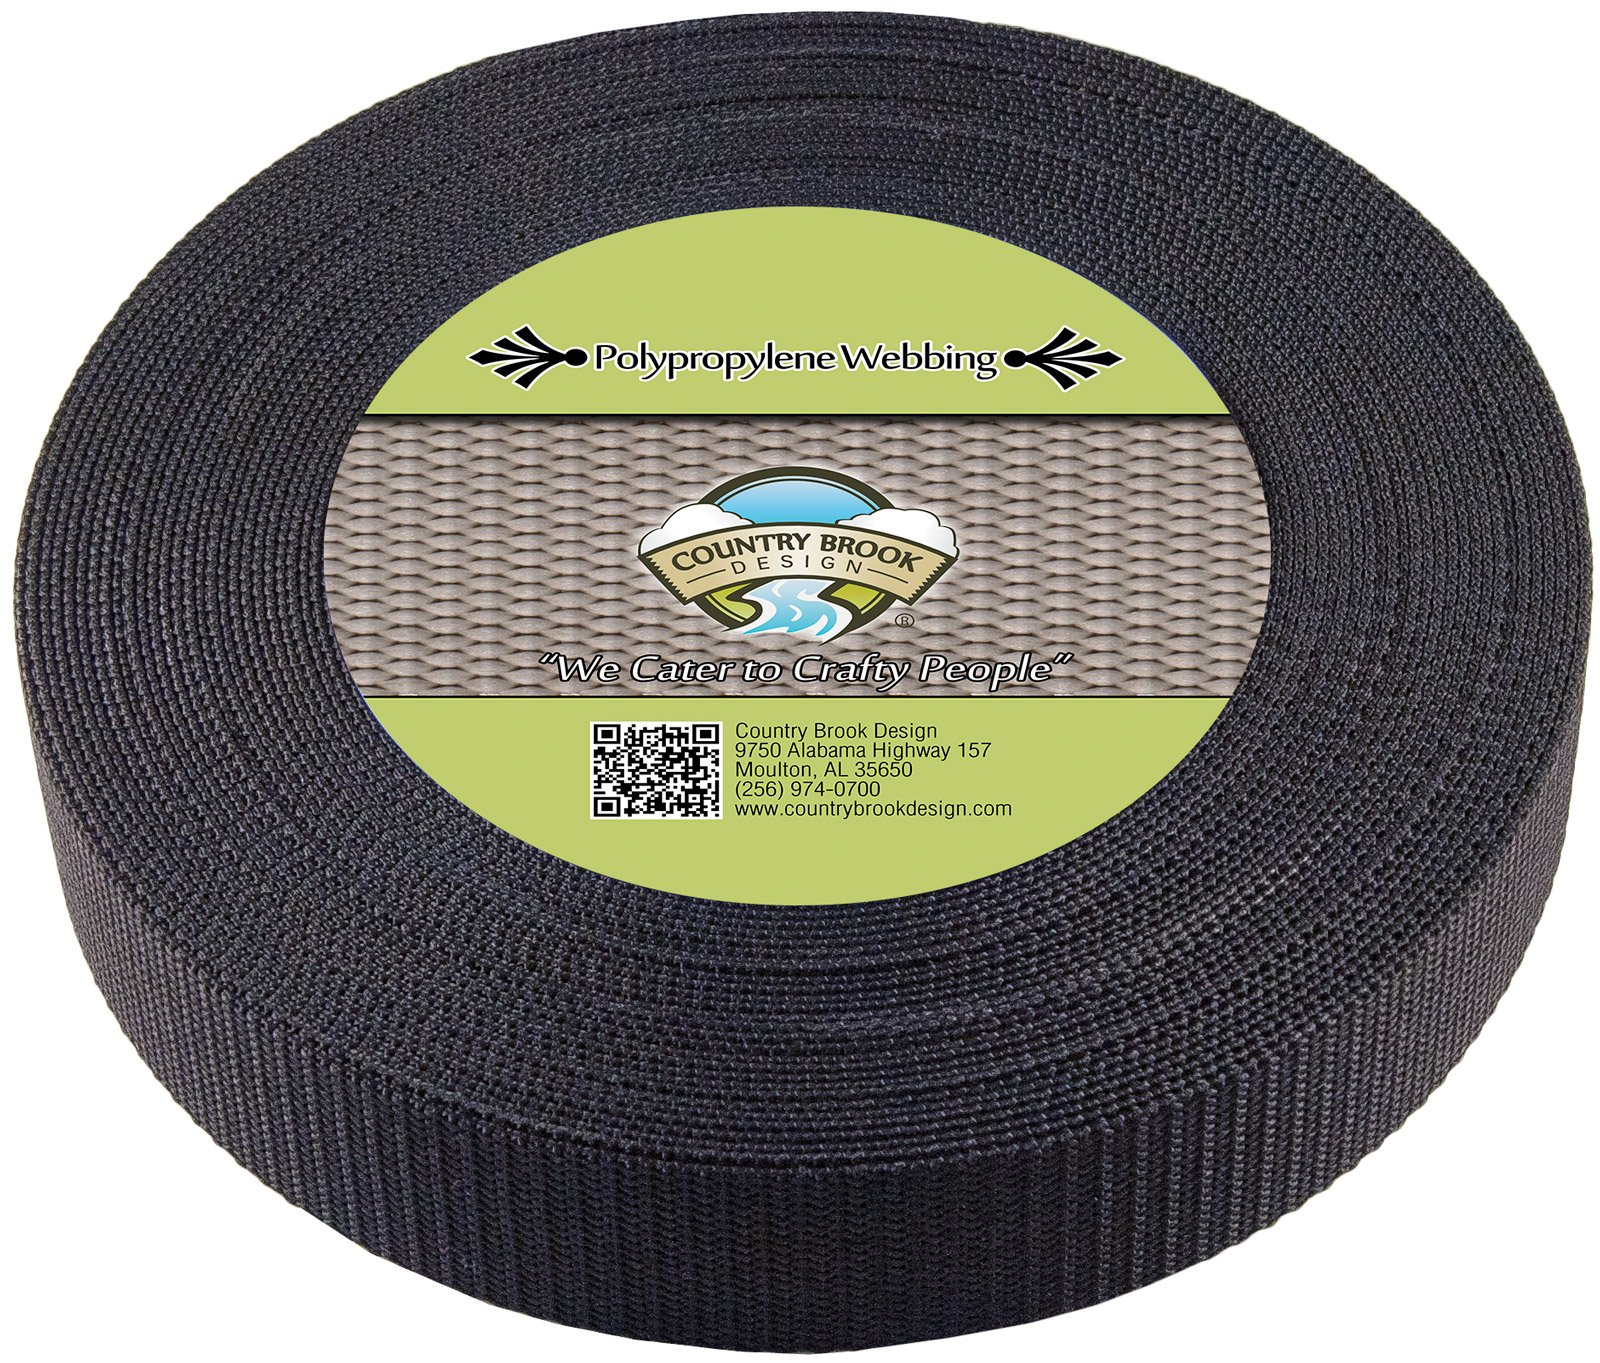 Country Brook Design 1 1/2 Inch Heavy Black Polypro Webbing, 700 Yards